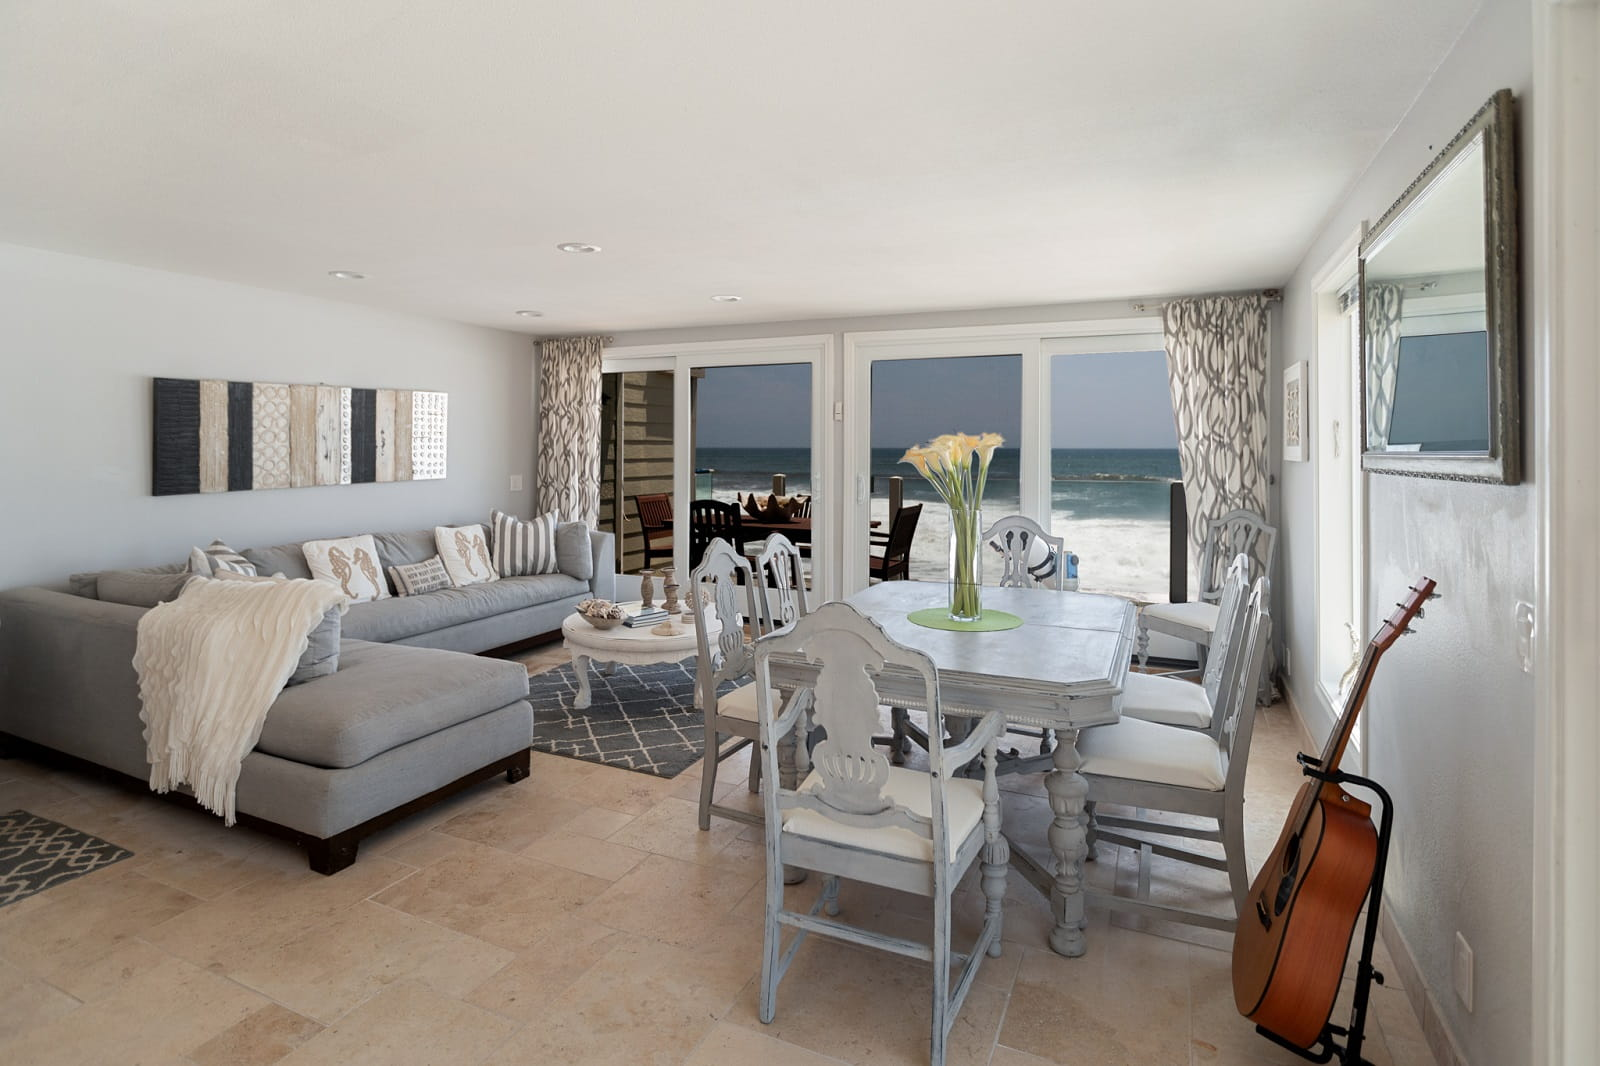 Real Estate Photography in Malibu - CA - USA - Living Area View